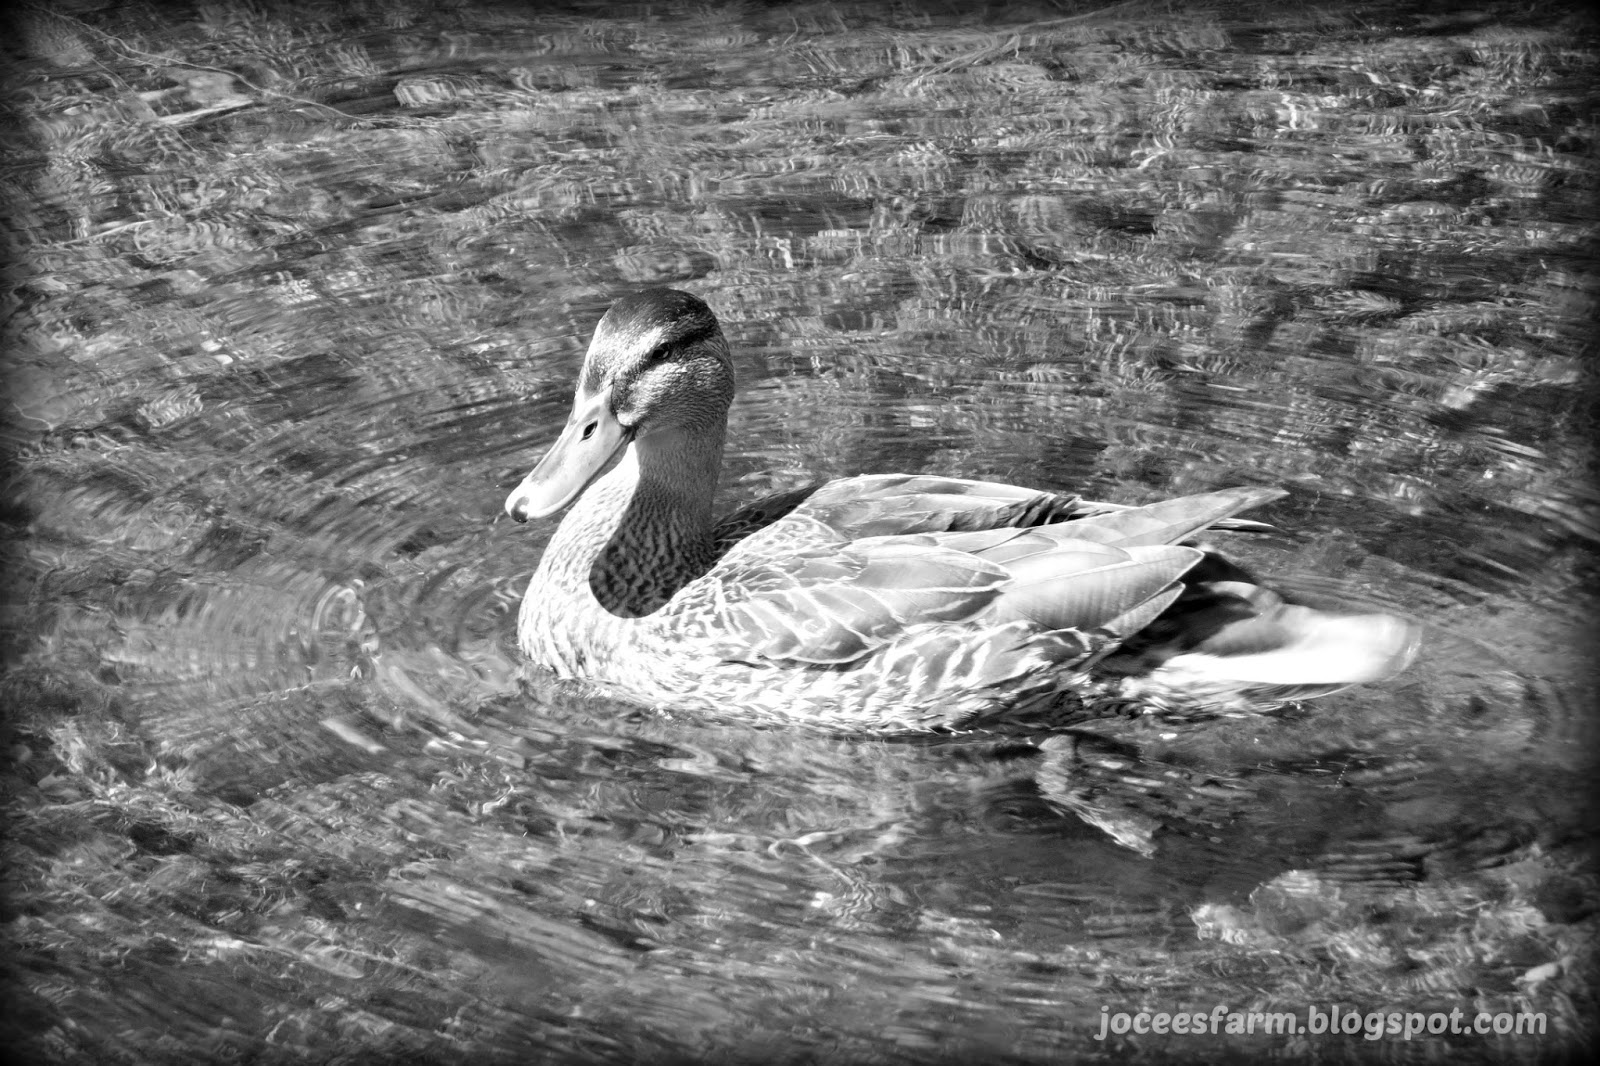 Ducks @  joceesfarm.blogspot.com